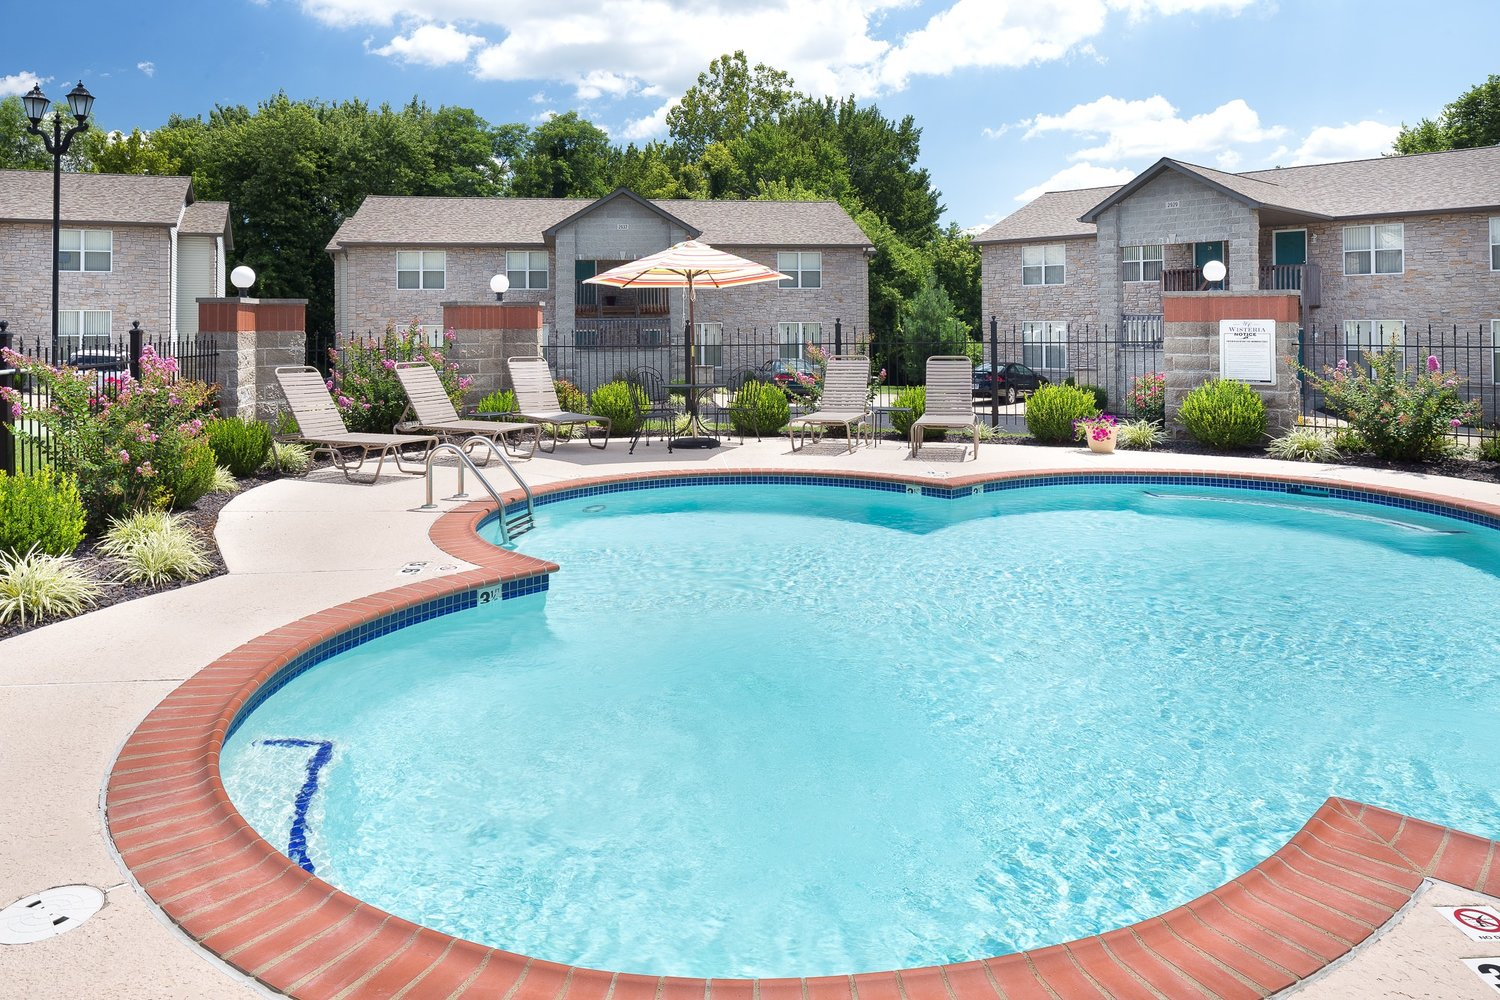 Apartments For Rent In St Clair County Wisteria Court Apartments